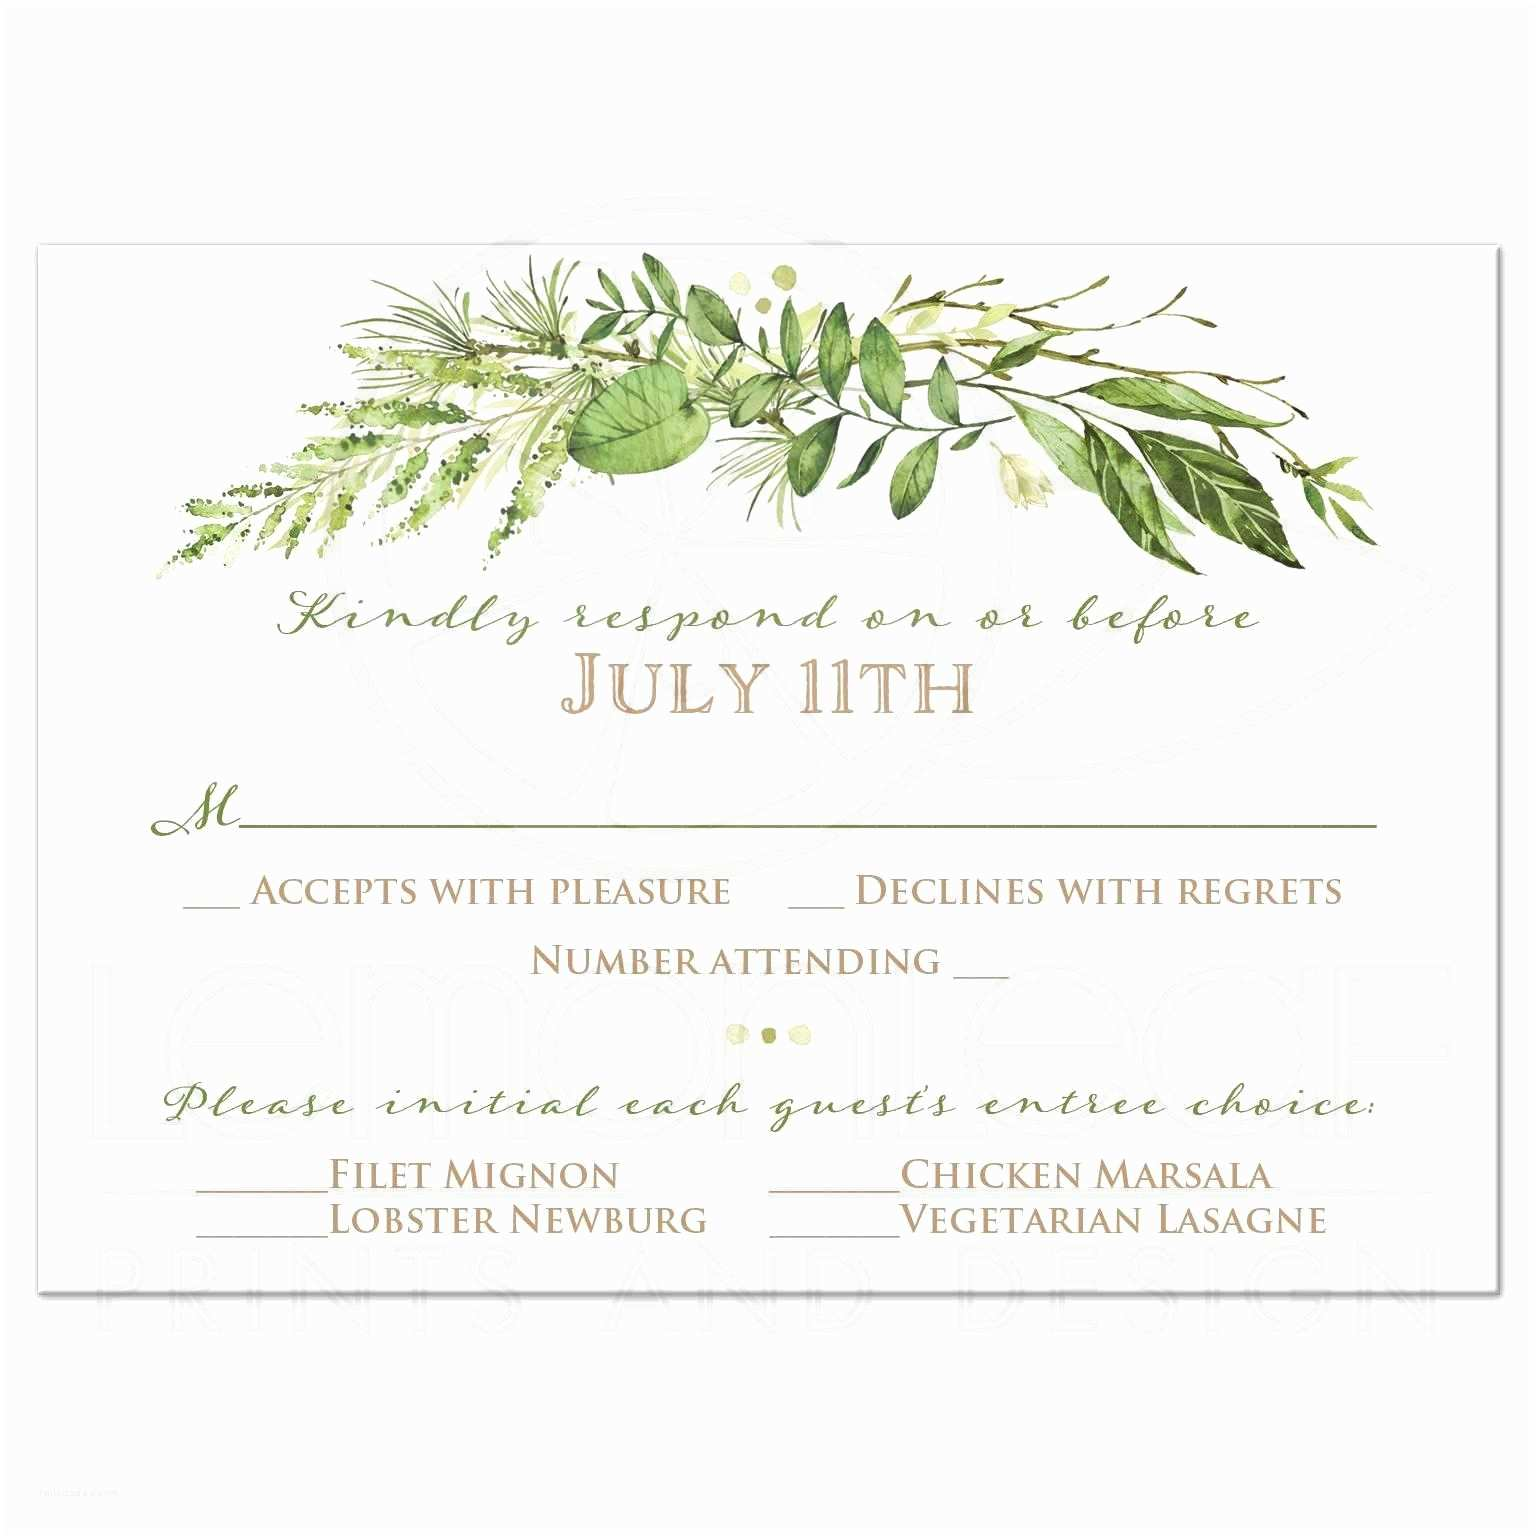 Primitive Wedding Invitations Outdoor Country Decor How to Protect Your Outdoor